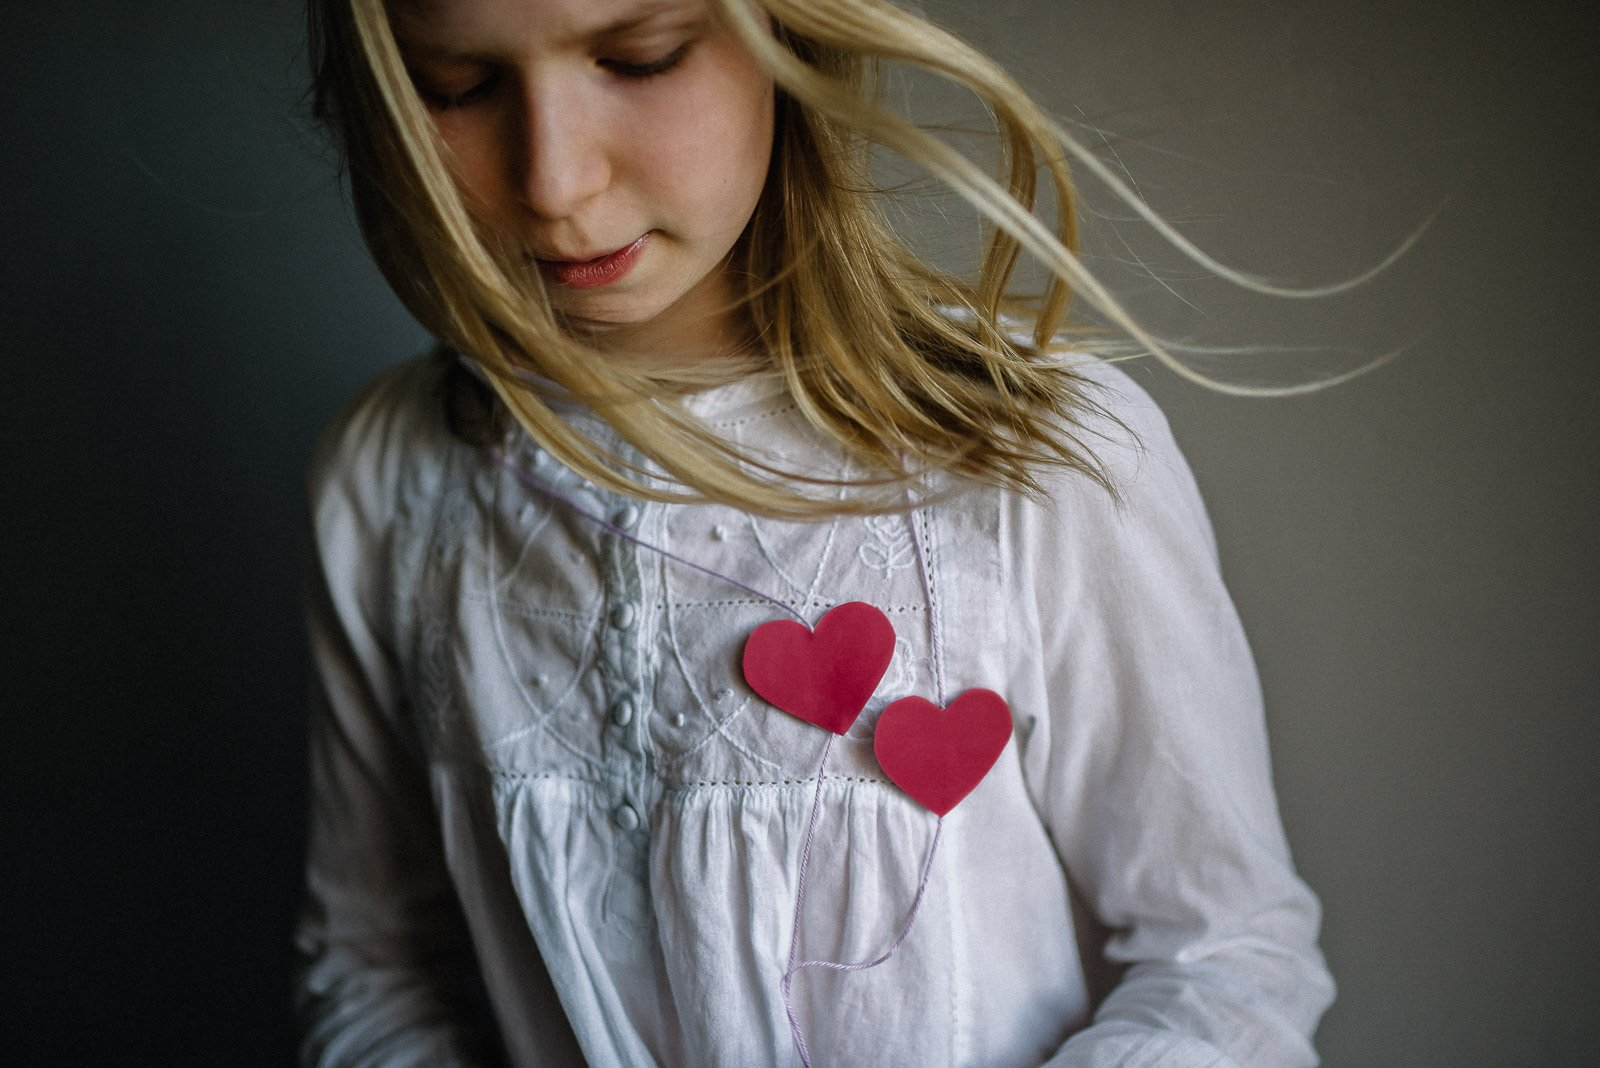 Tania-girl-with-paper-hearts-on-shirt_taniad